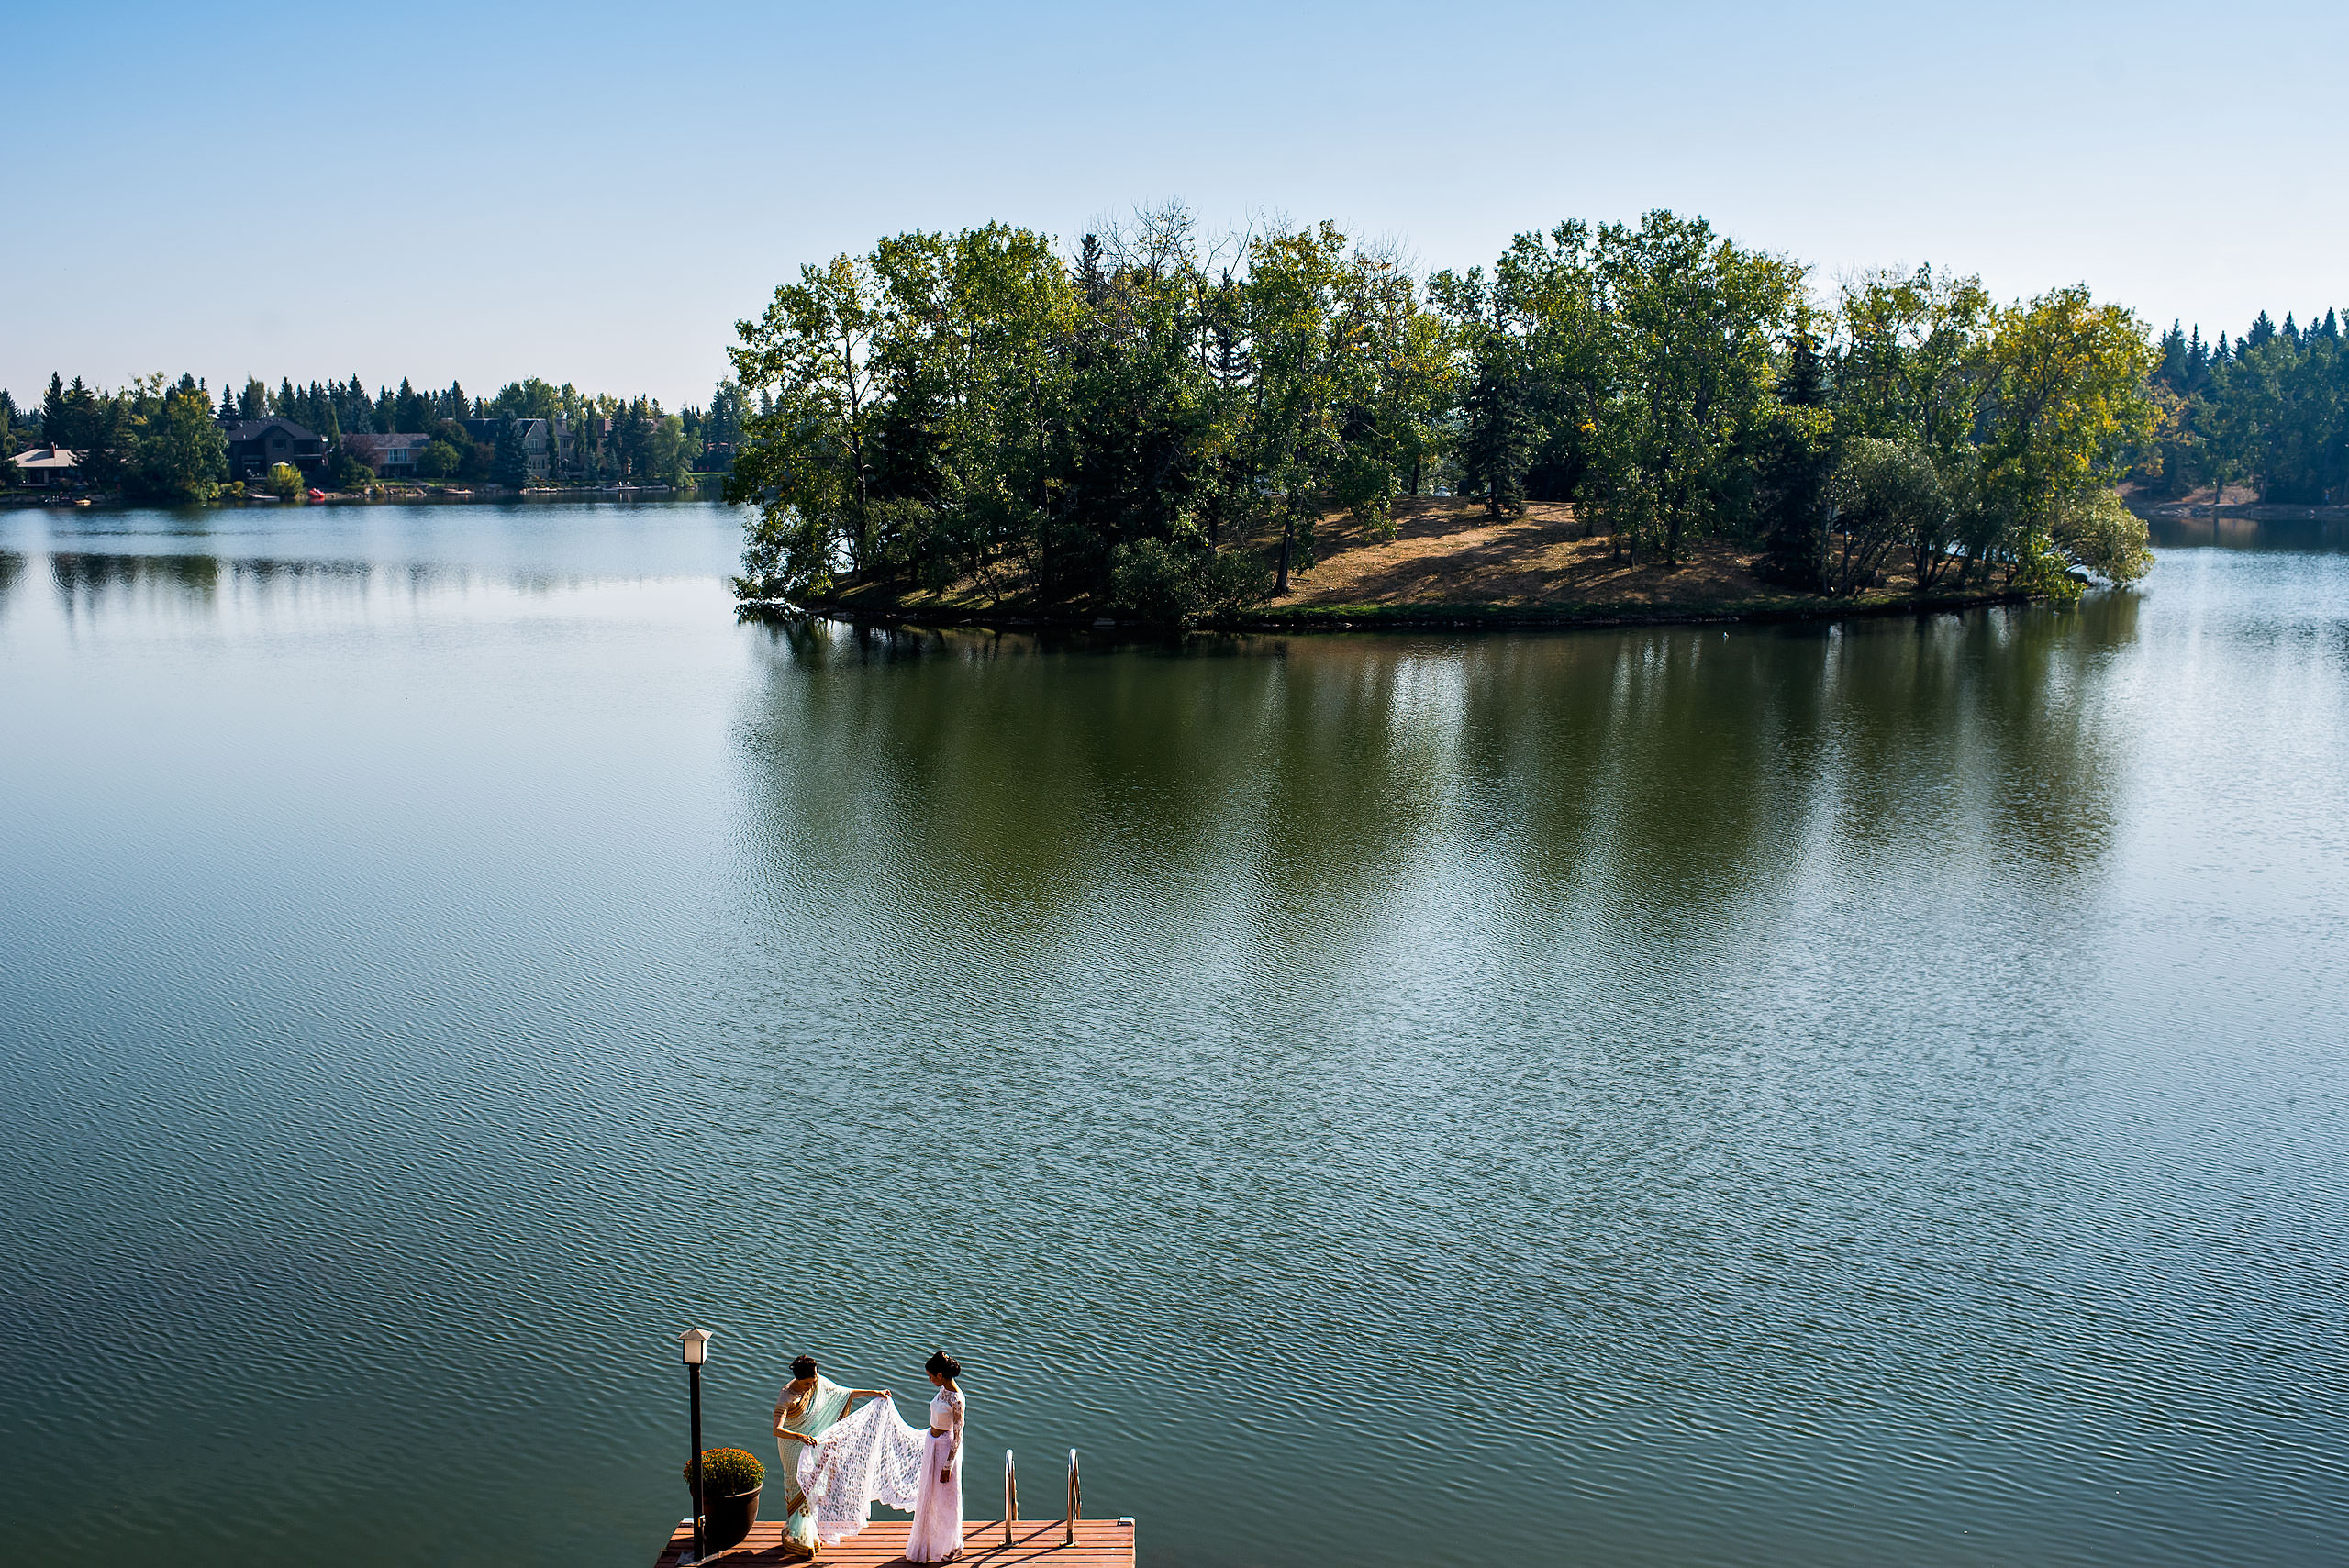 a mom and a daughter on a dock in front of a lake by Calgary Banff Wedding Photographer Sean LeBlanc